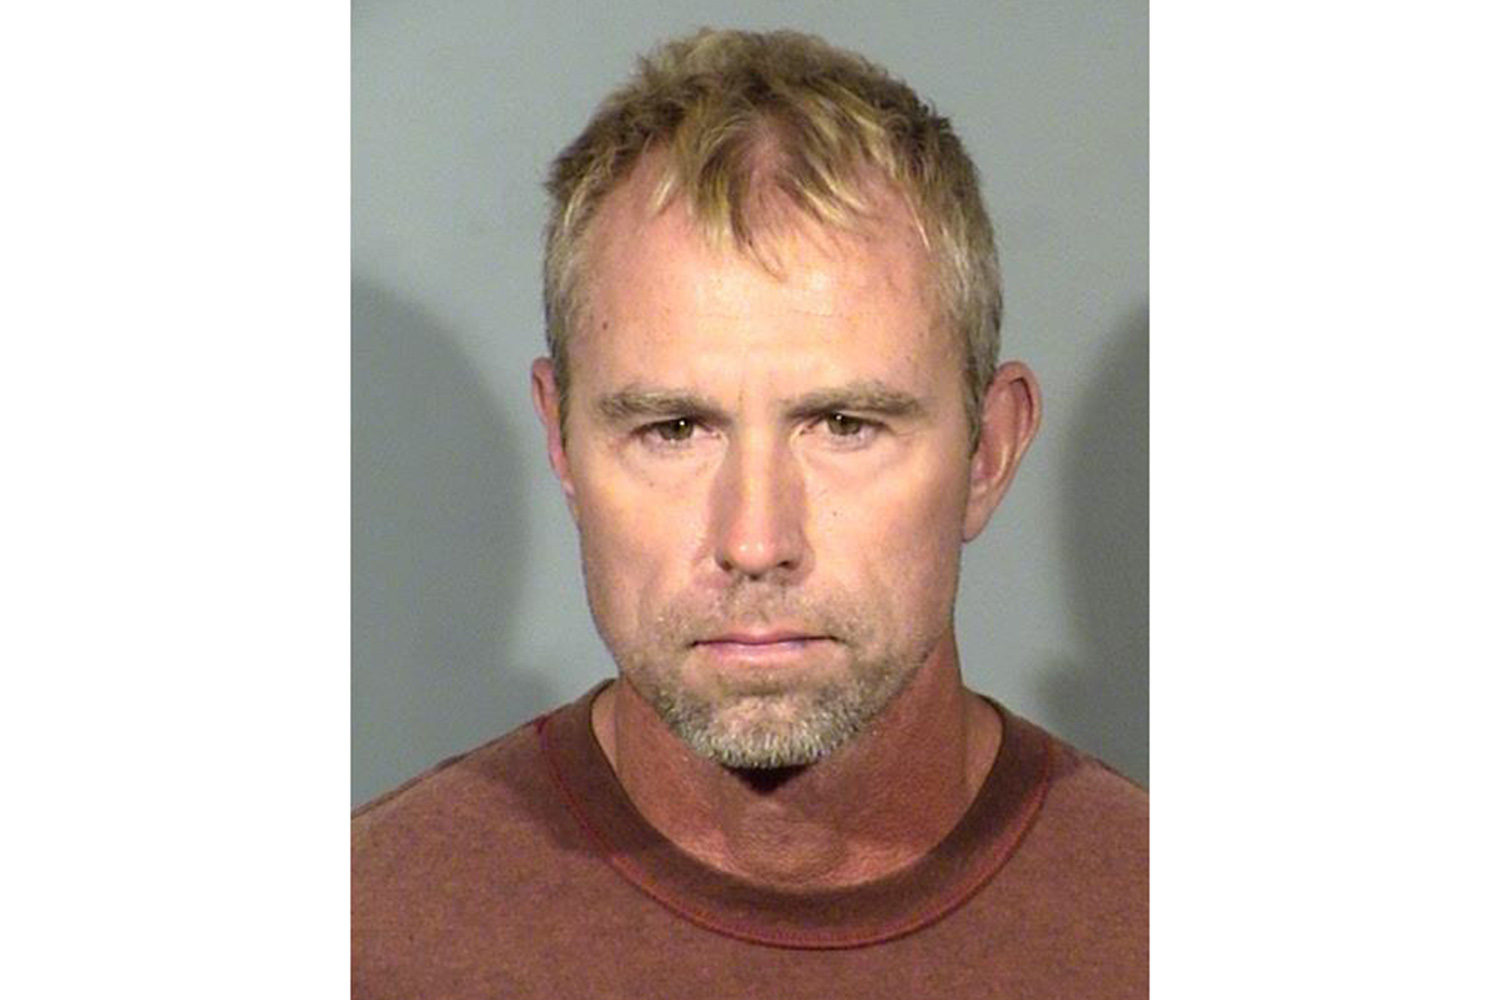 On July 10, 2020, LVMPD Sex Crimes Detectives arrested 52-year-old Terry Gray for multiple counts of Lewdness with a Minor